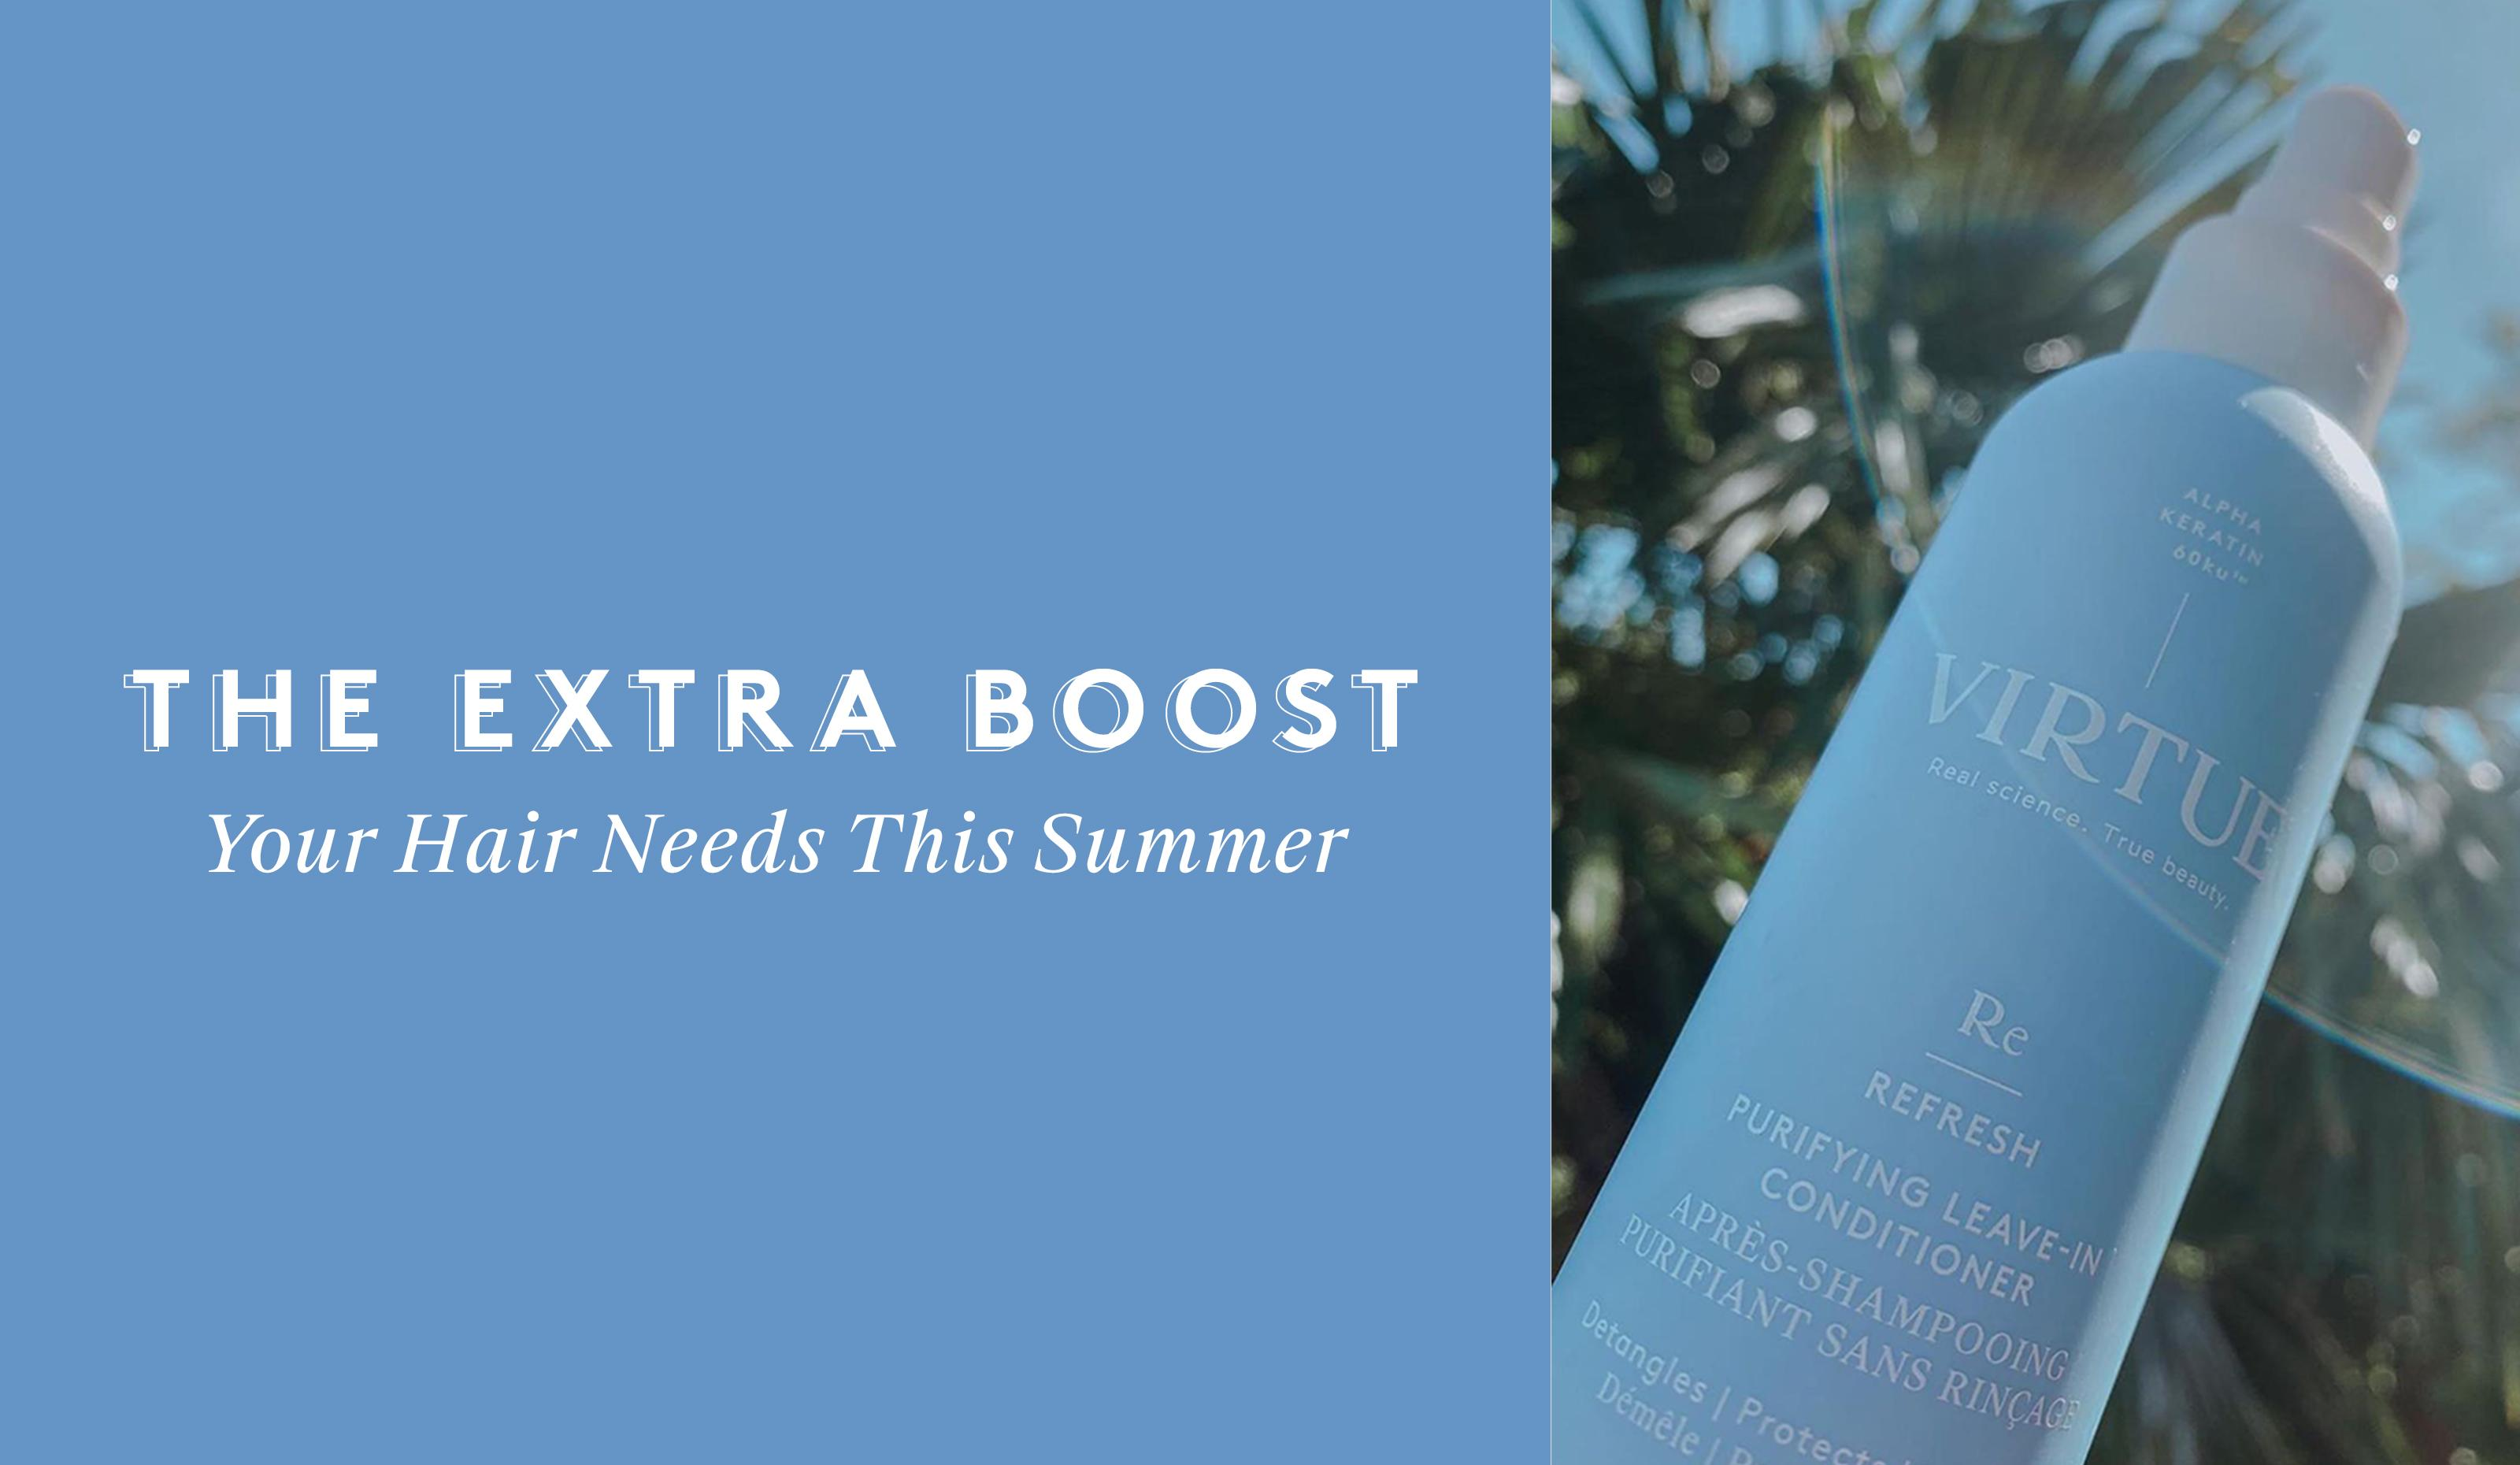 The Extra Boost Your Hair Needs This Summer